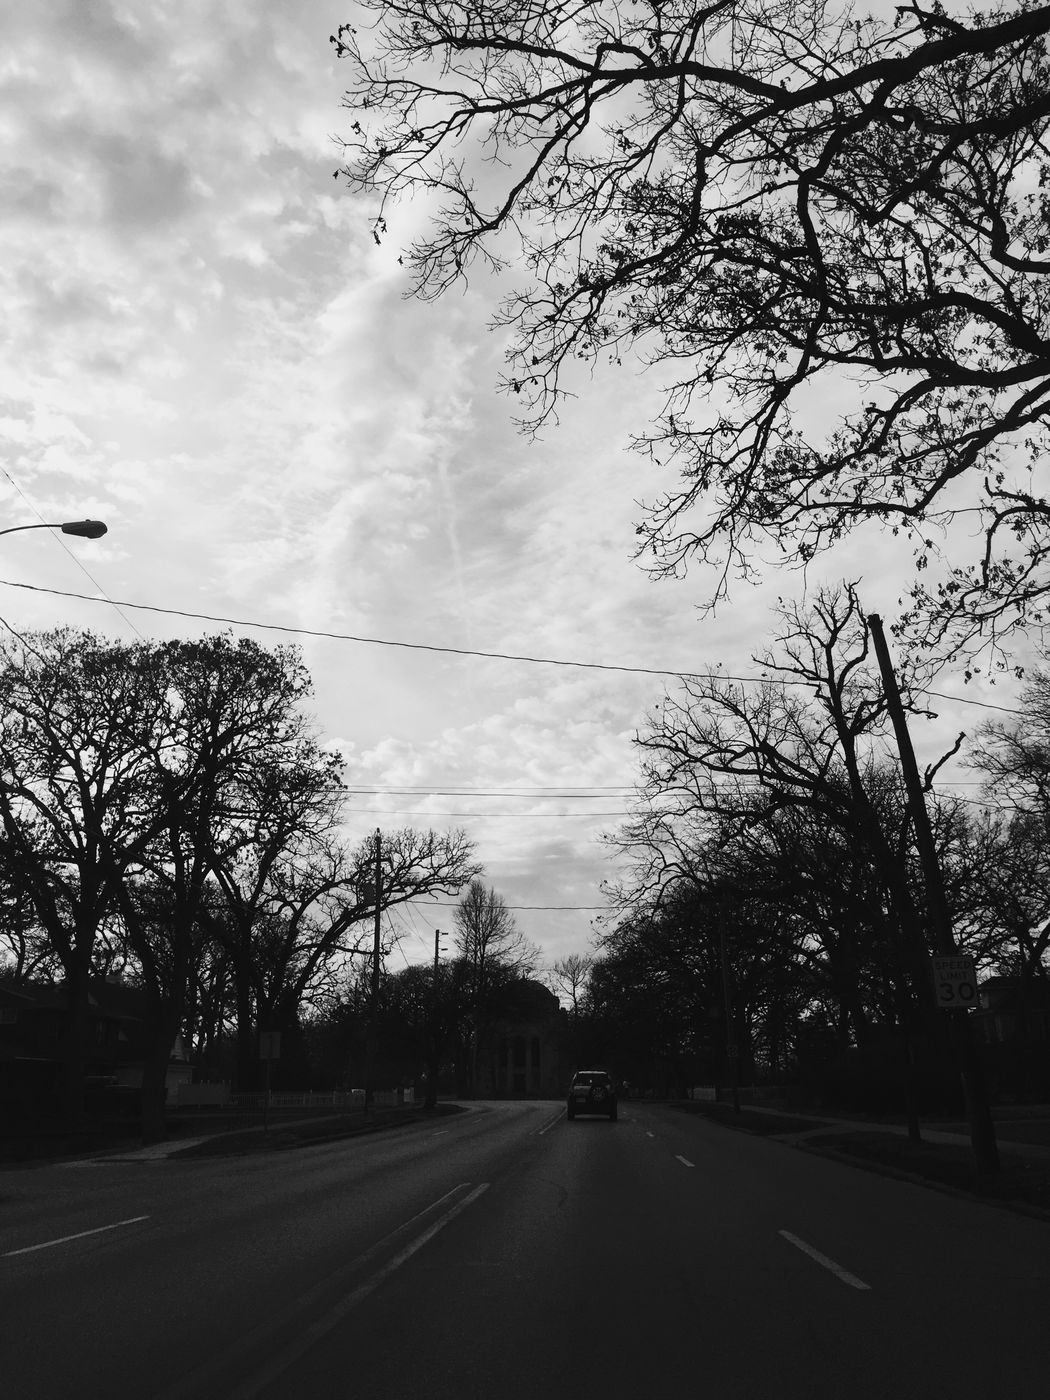 On the way home Drive Roads Clouds Architectural Nature Blackandwhite